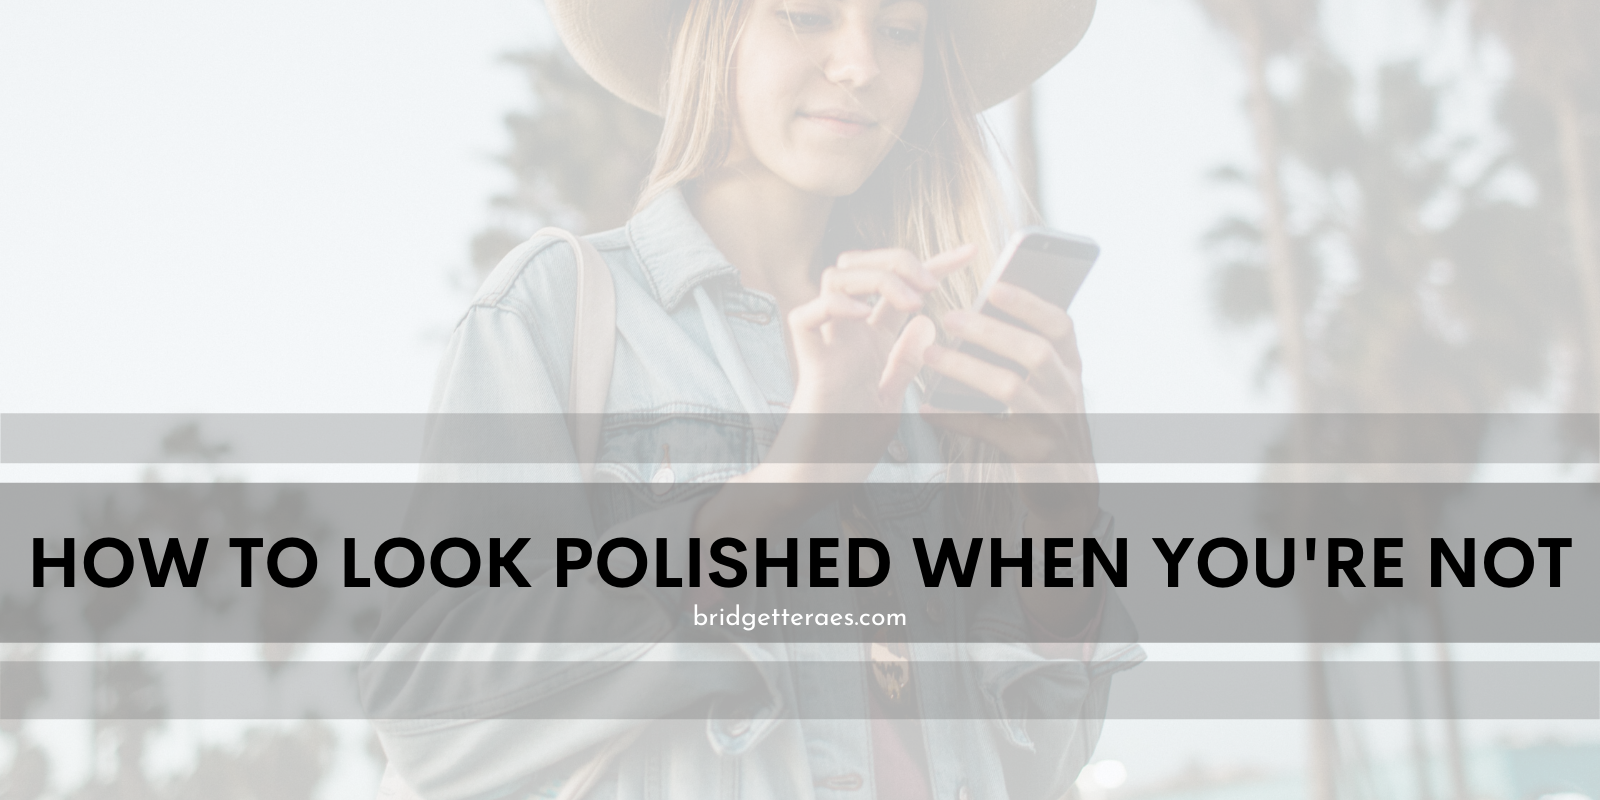 How to Look Polished When You're Not